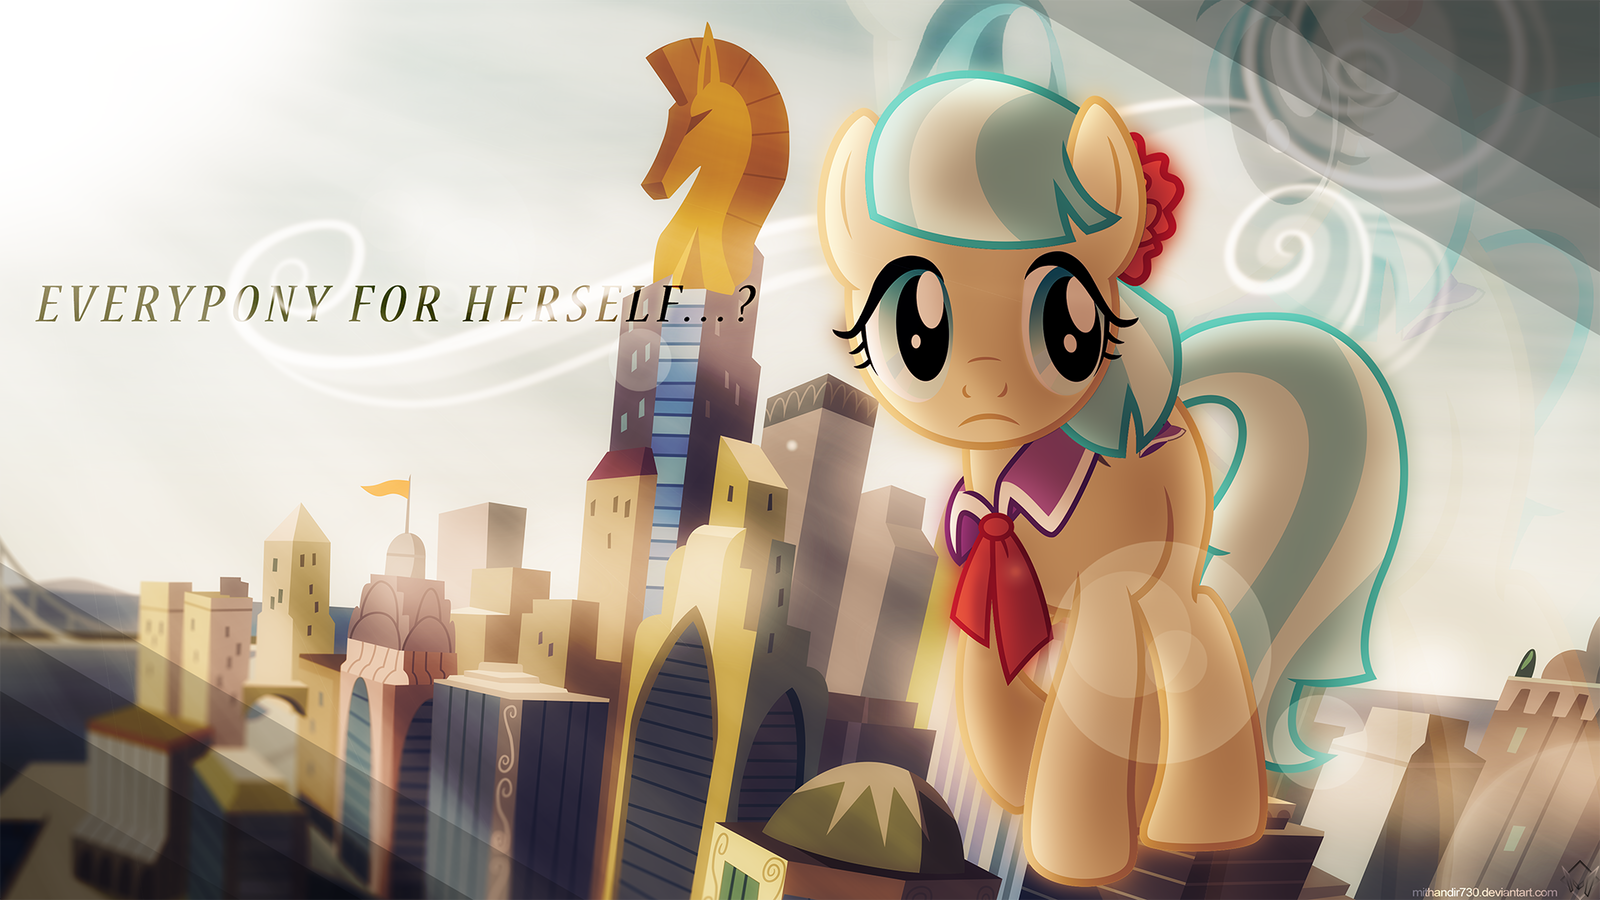 Everypony for herself